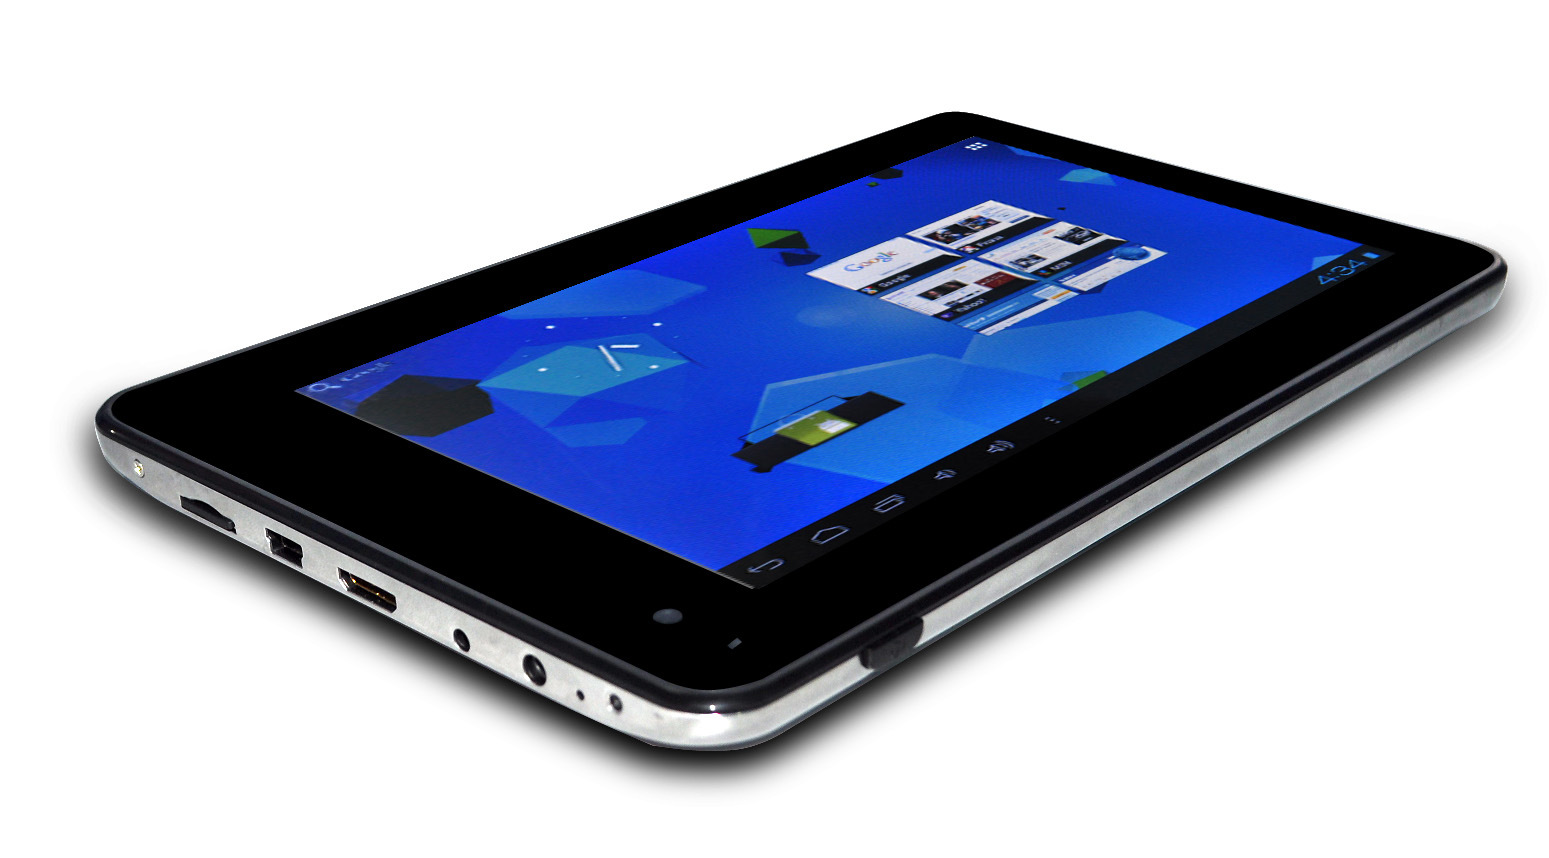 B56 Via8650 Tablet PC 7inch Metal Cover Android 4.0 Capacitive